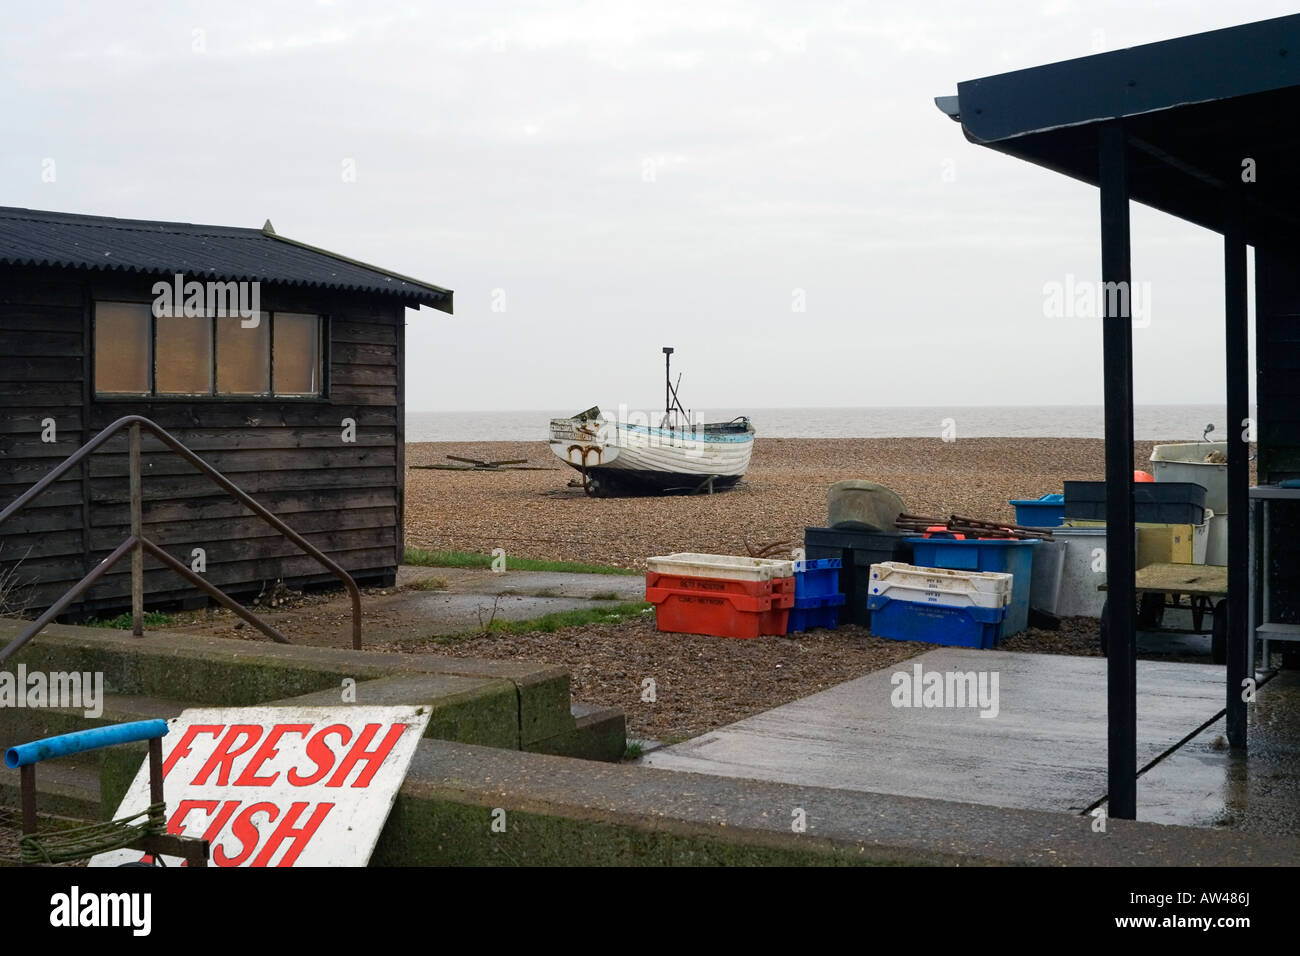 Aldeburgh Fisherman Shops Backyard and Boat - Stock Image